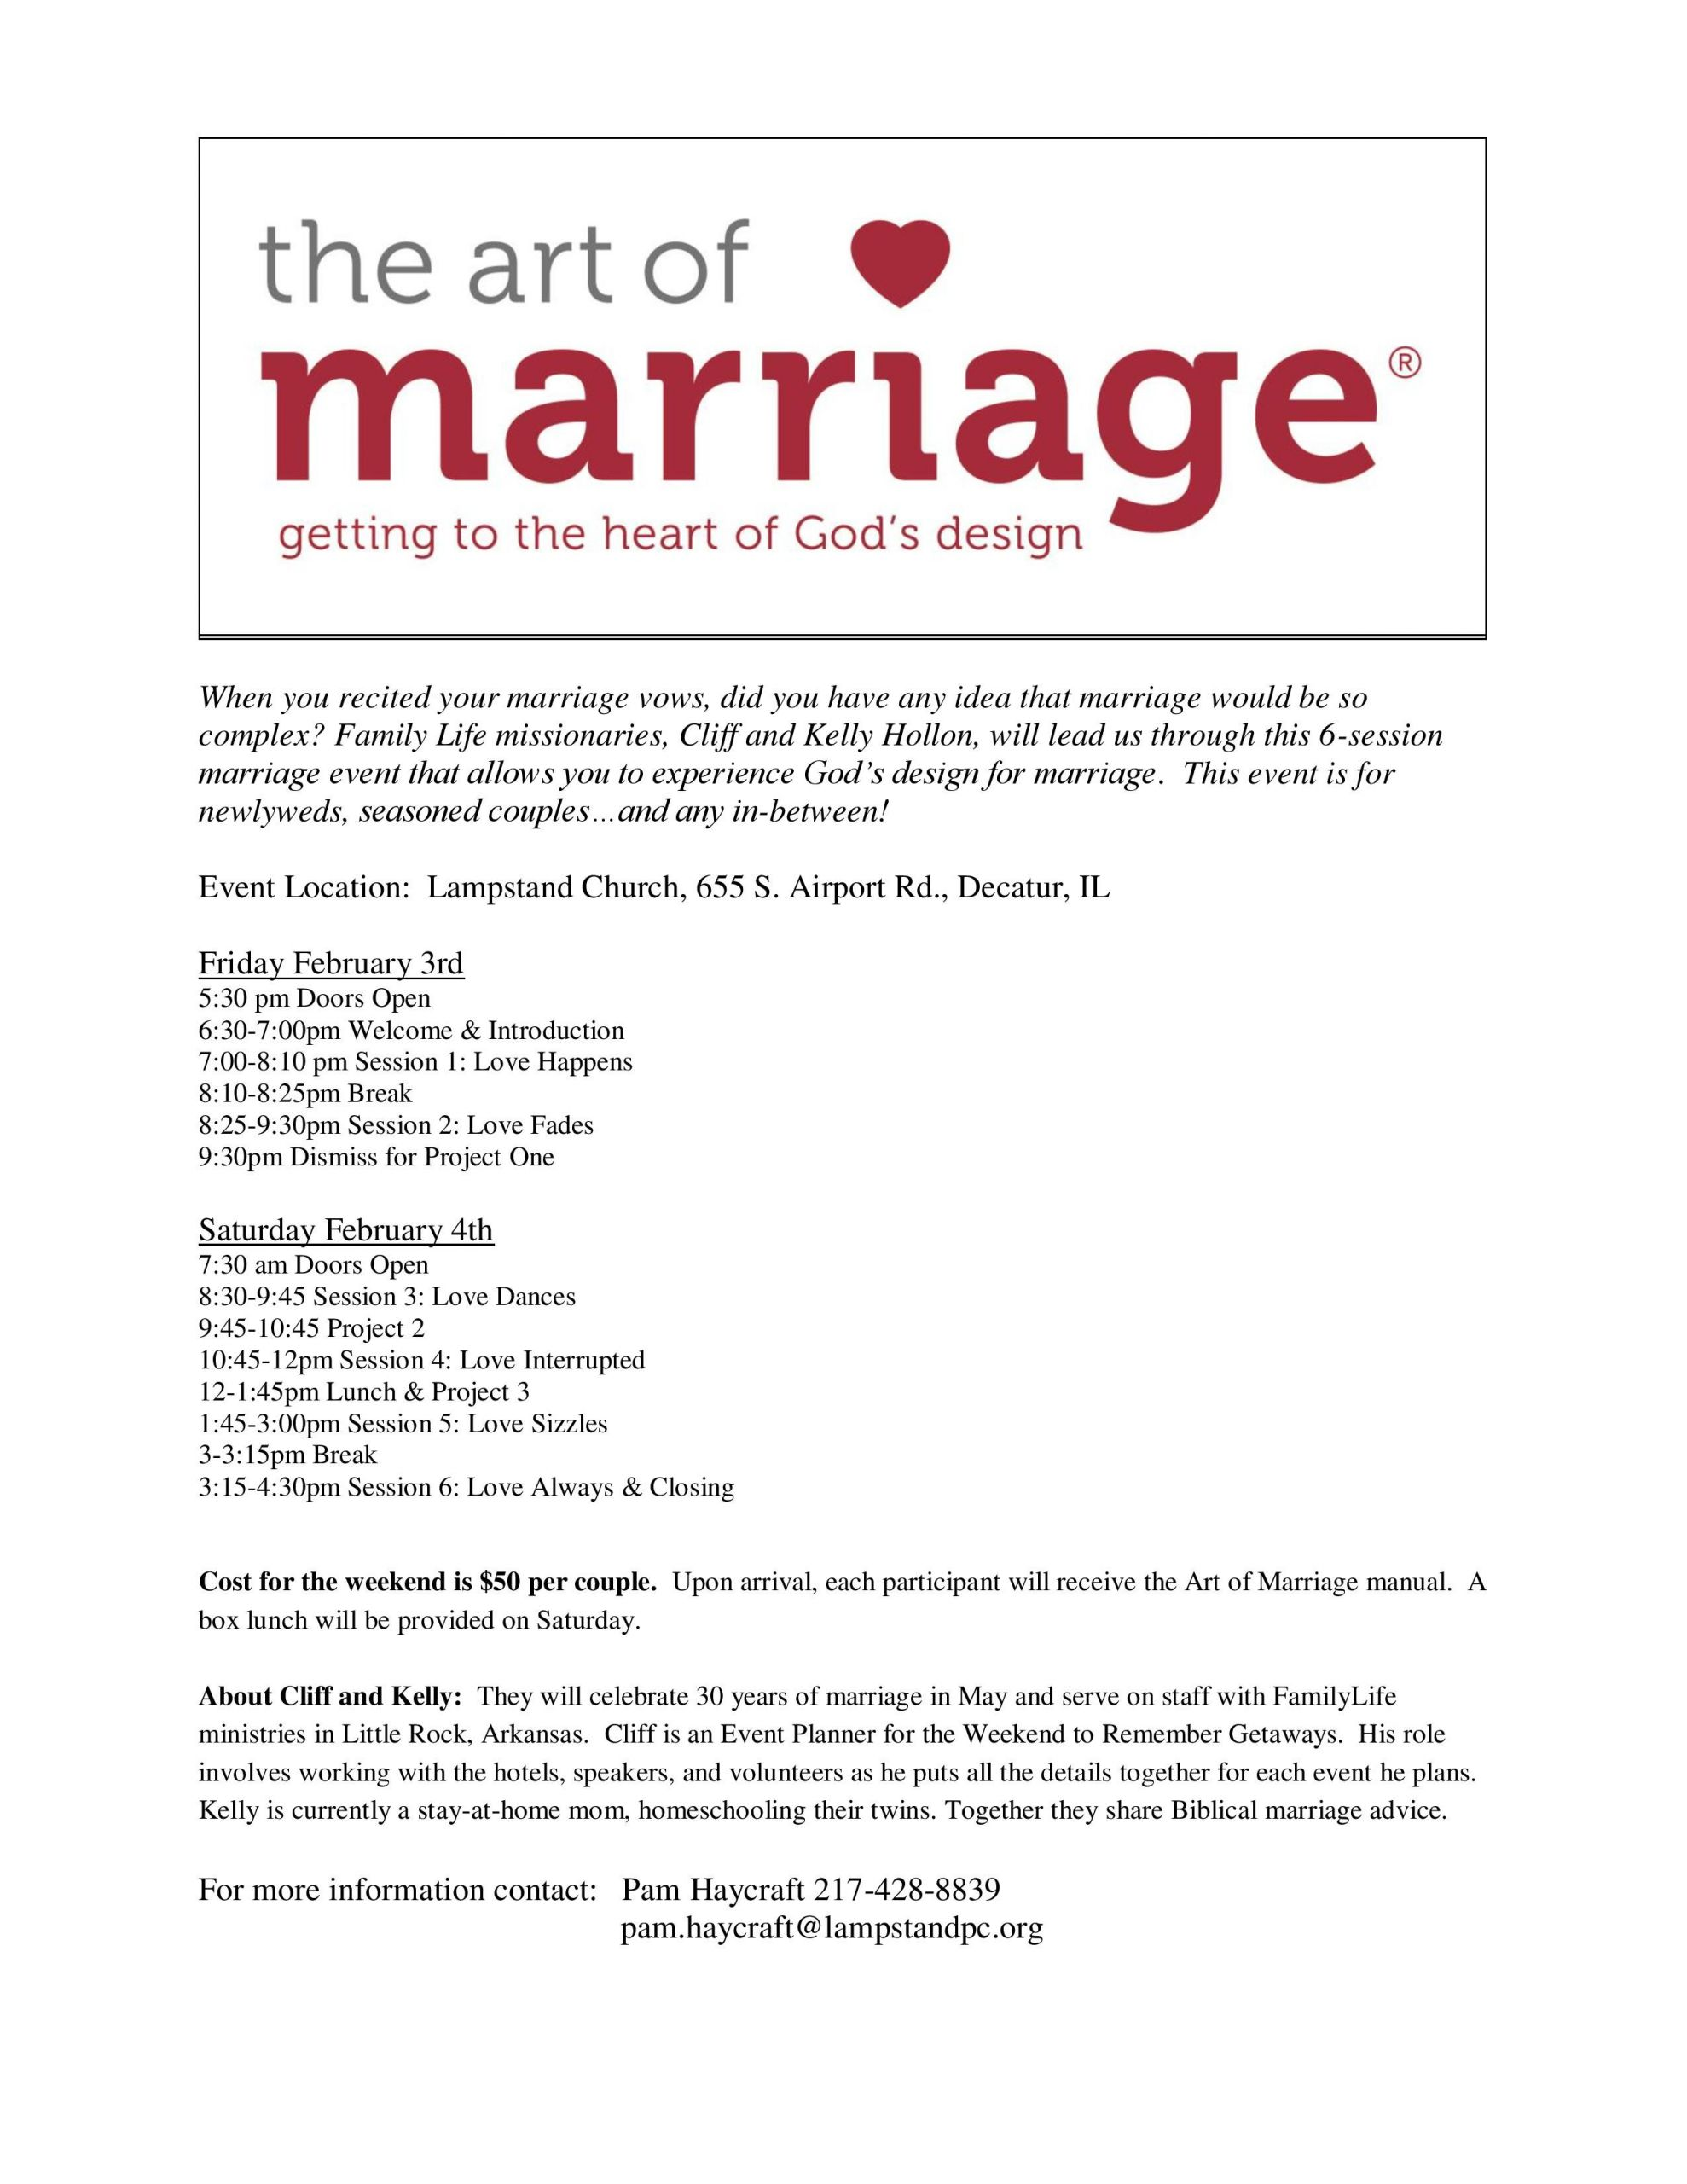 Are Wedding Vows In The Bible  The Art Marriage – Lampstand Church